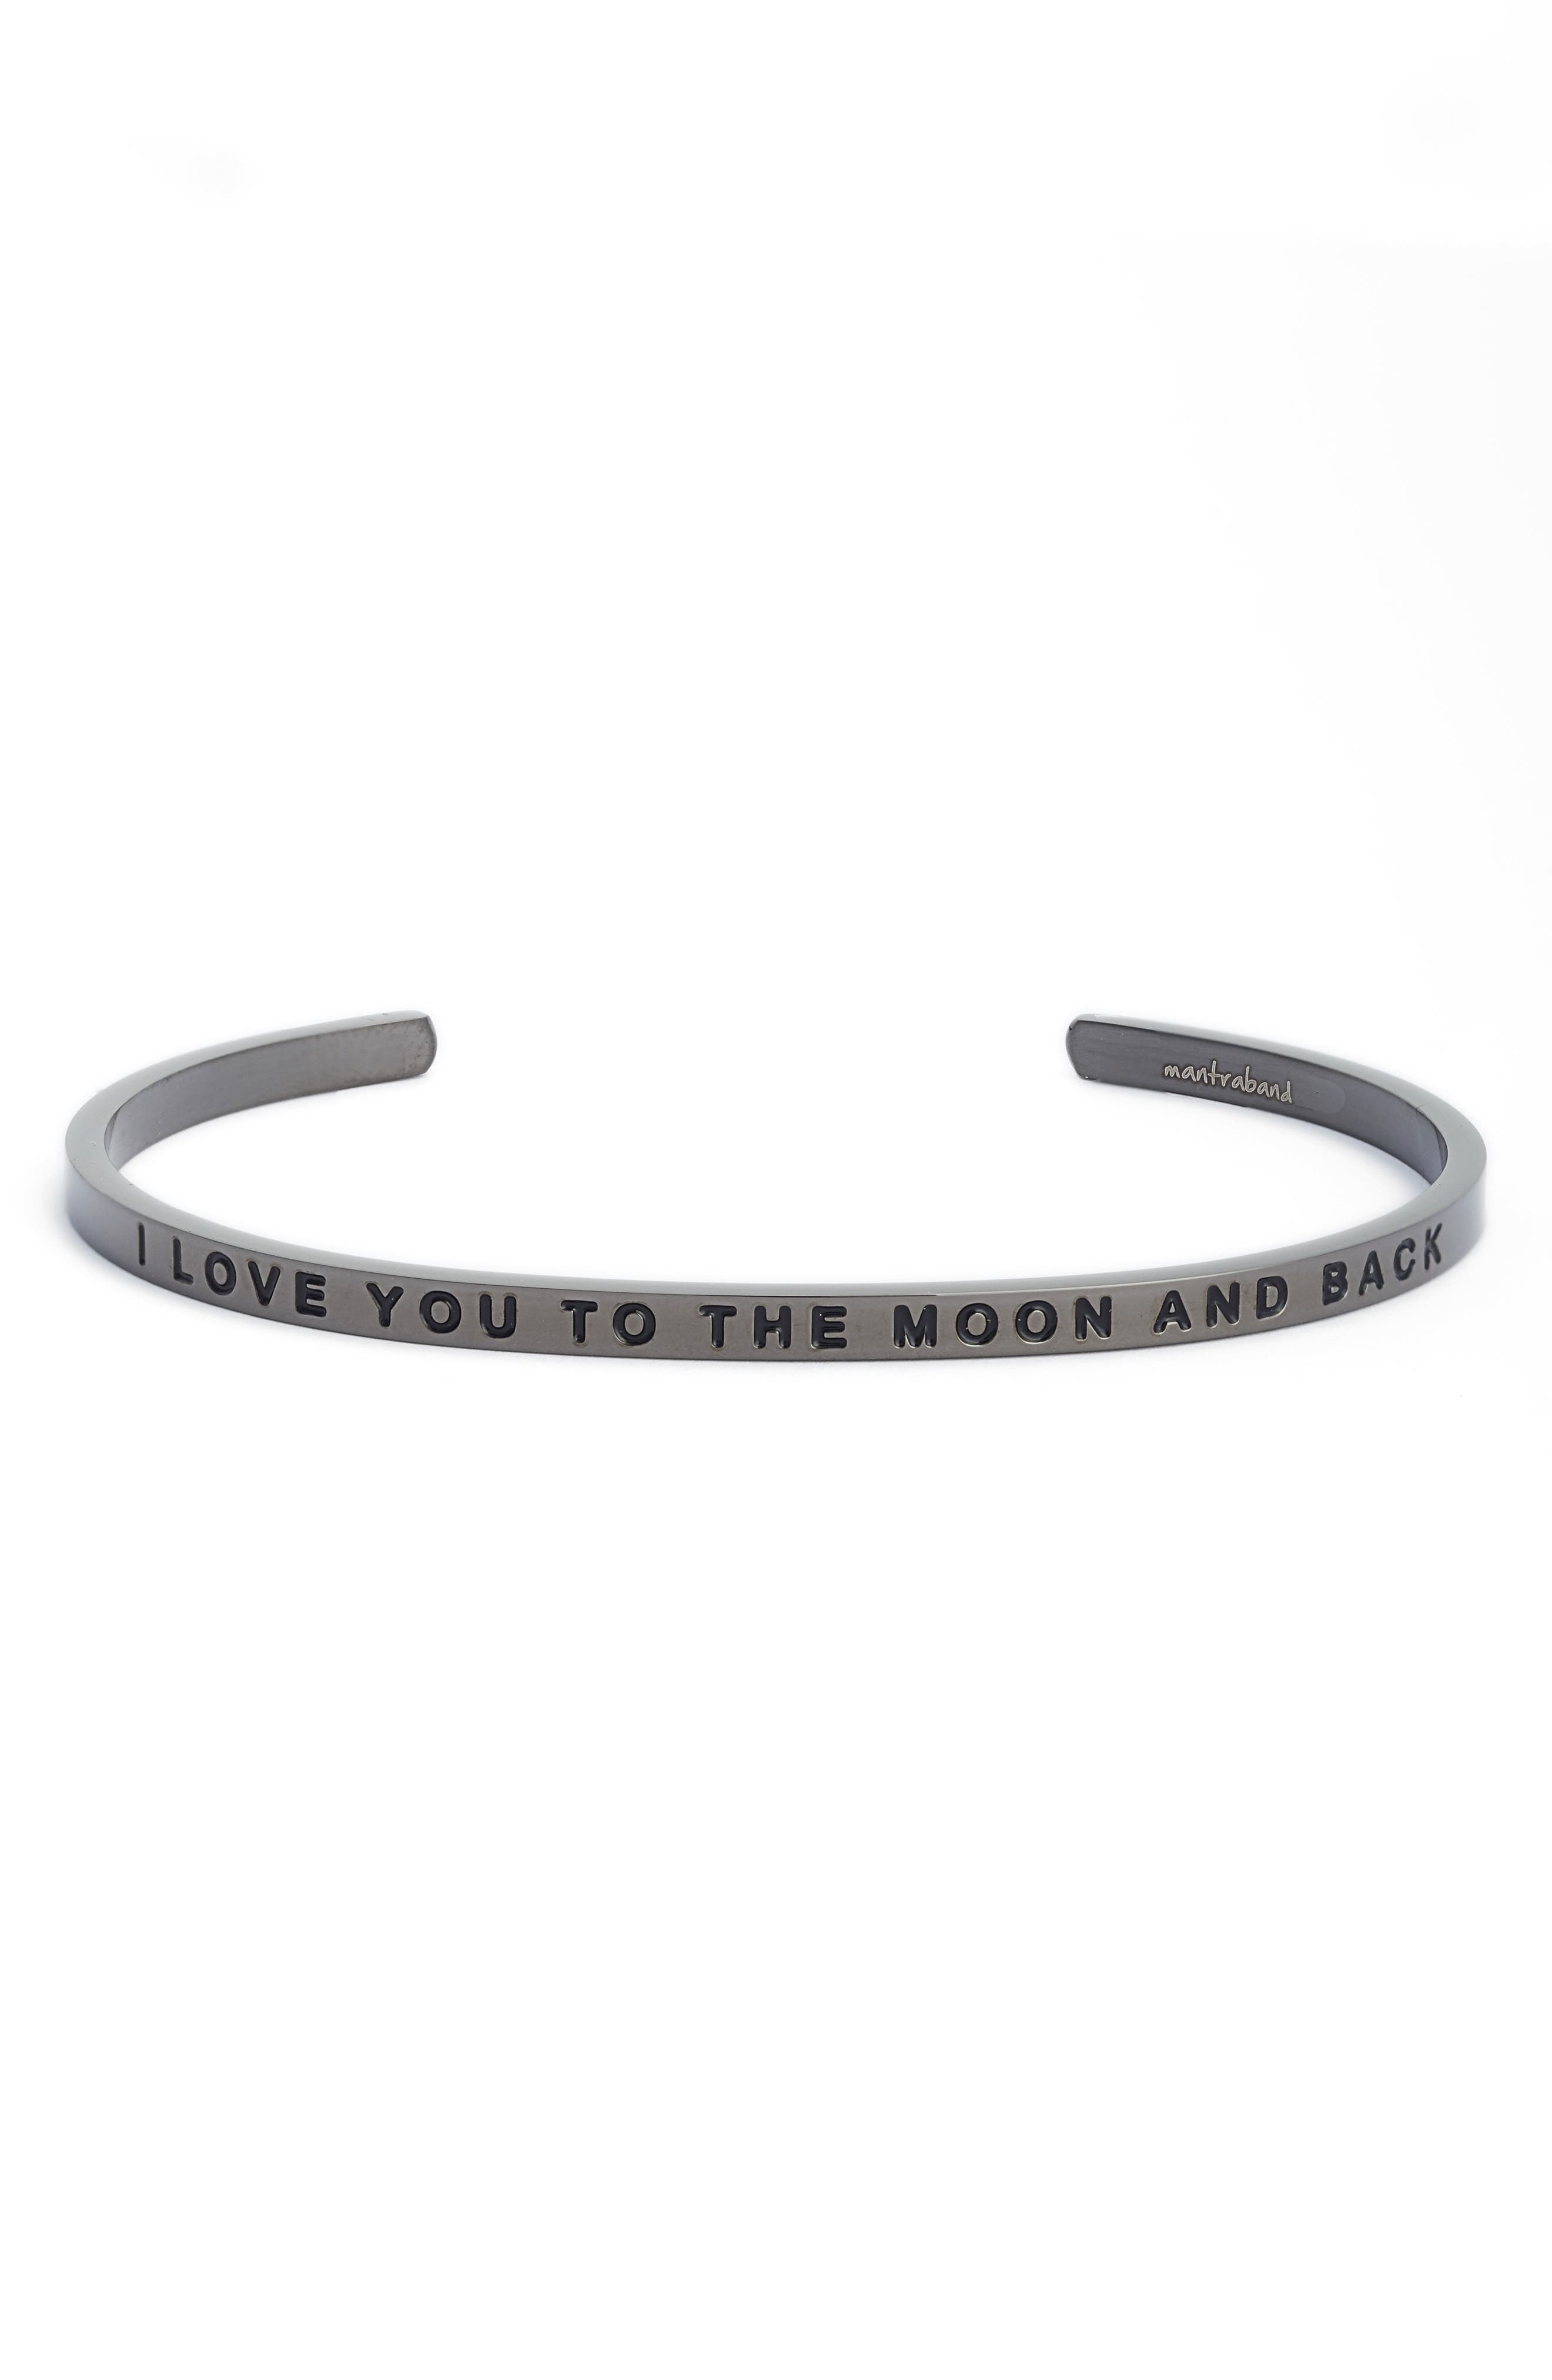 I Love You to the Moon and Back Cuff Bracelet,                             Main thumbnail 1, color,                             Moon Gray